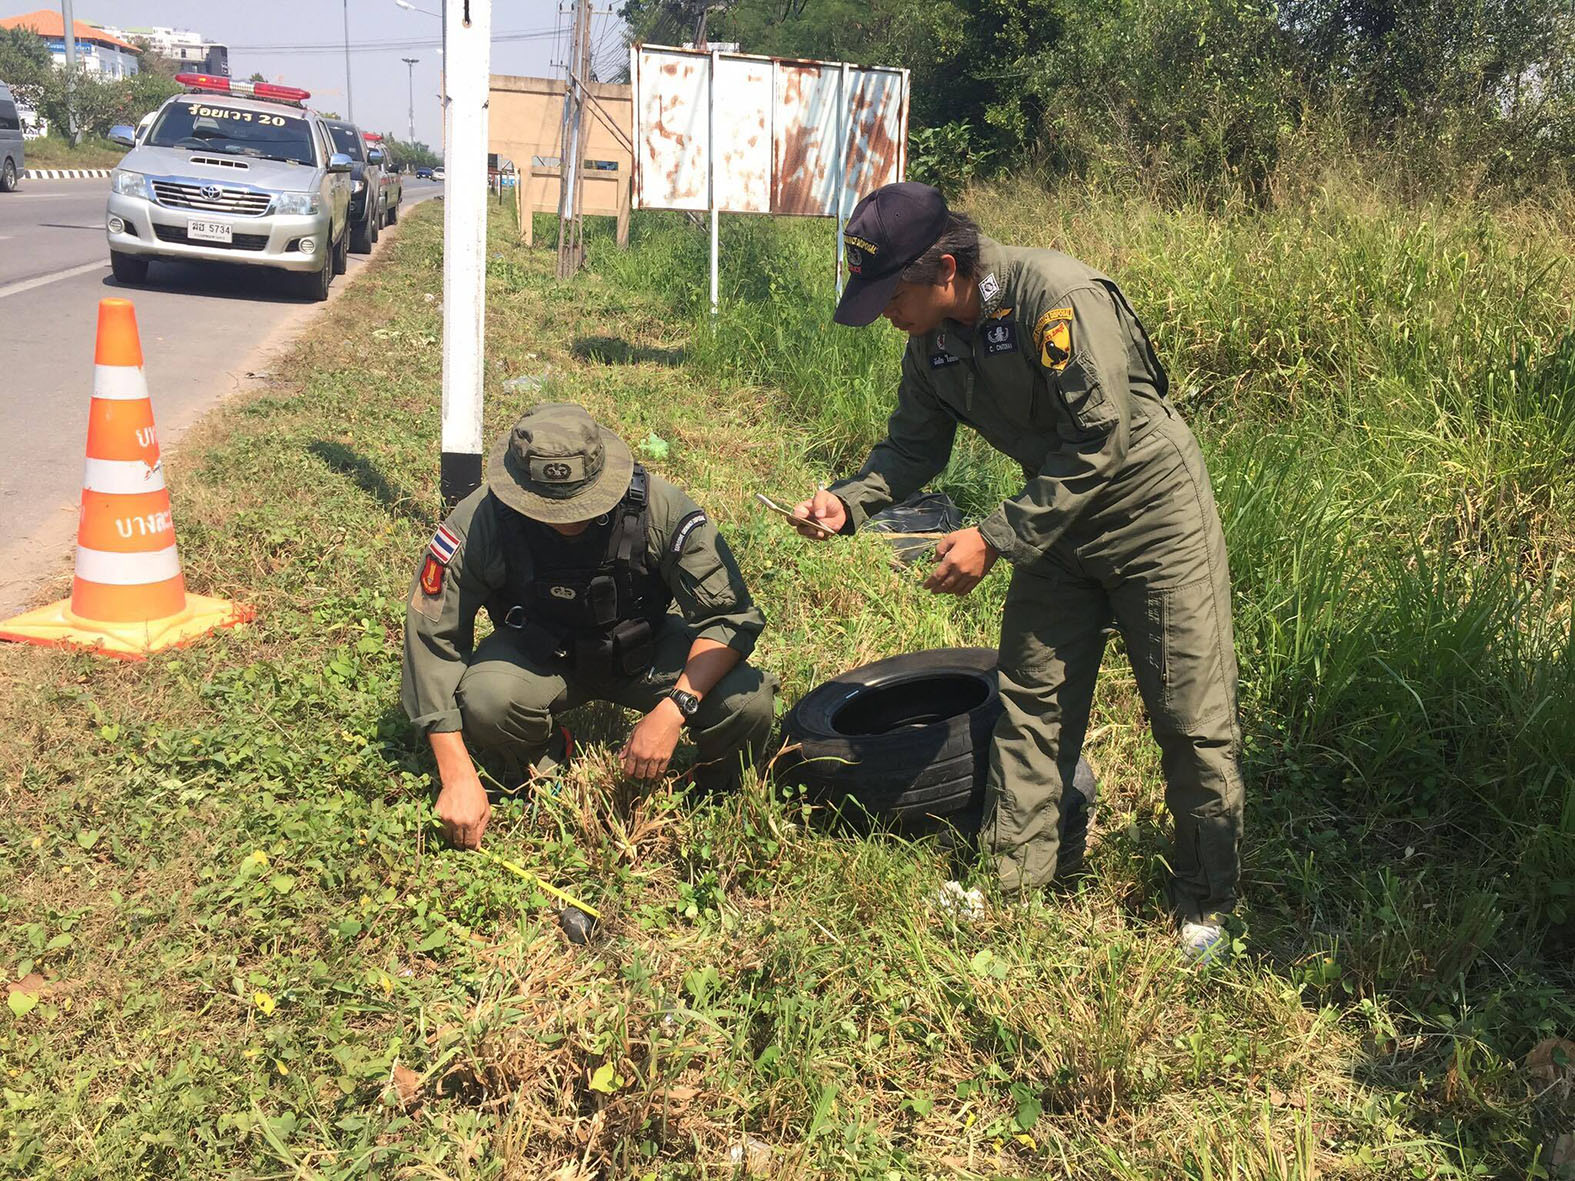 Bomb squad police begin the process of defusing an IED found on a Sattahip roadside.